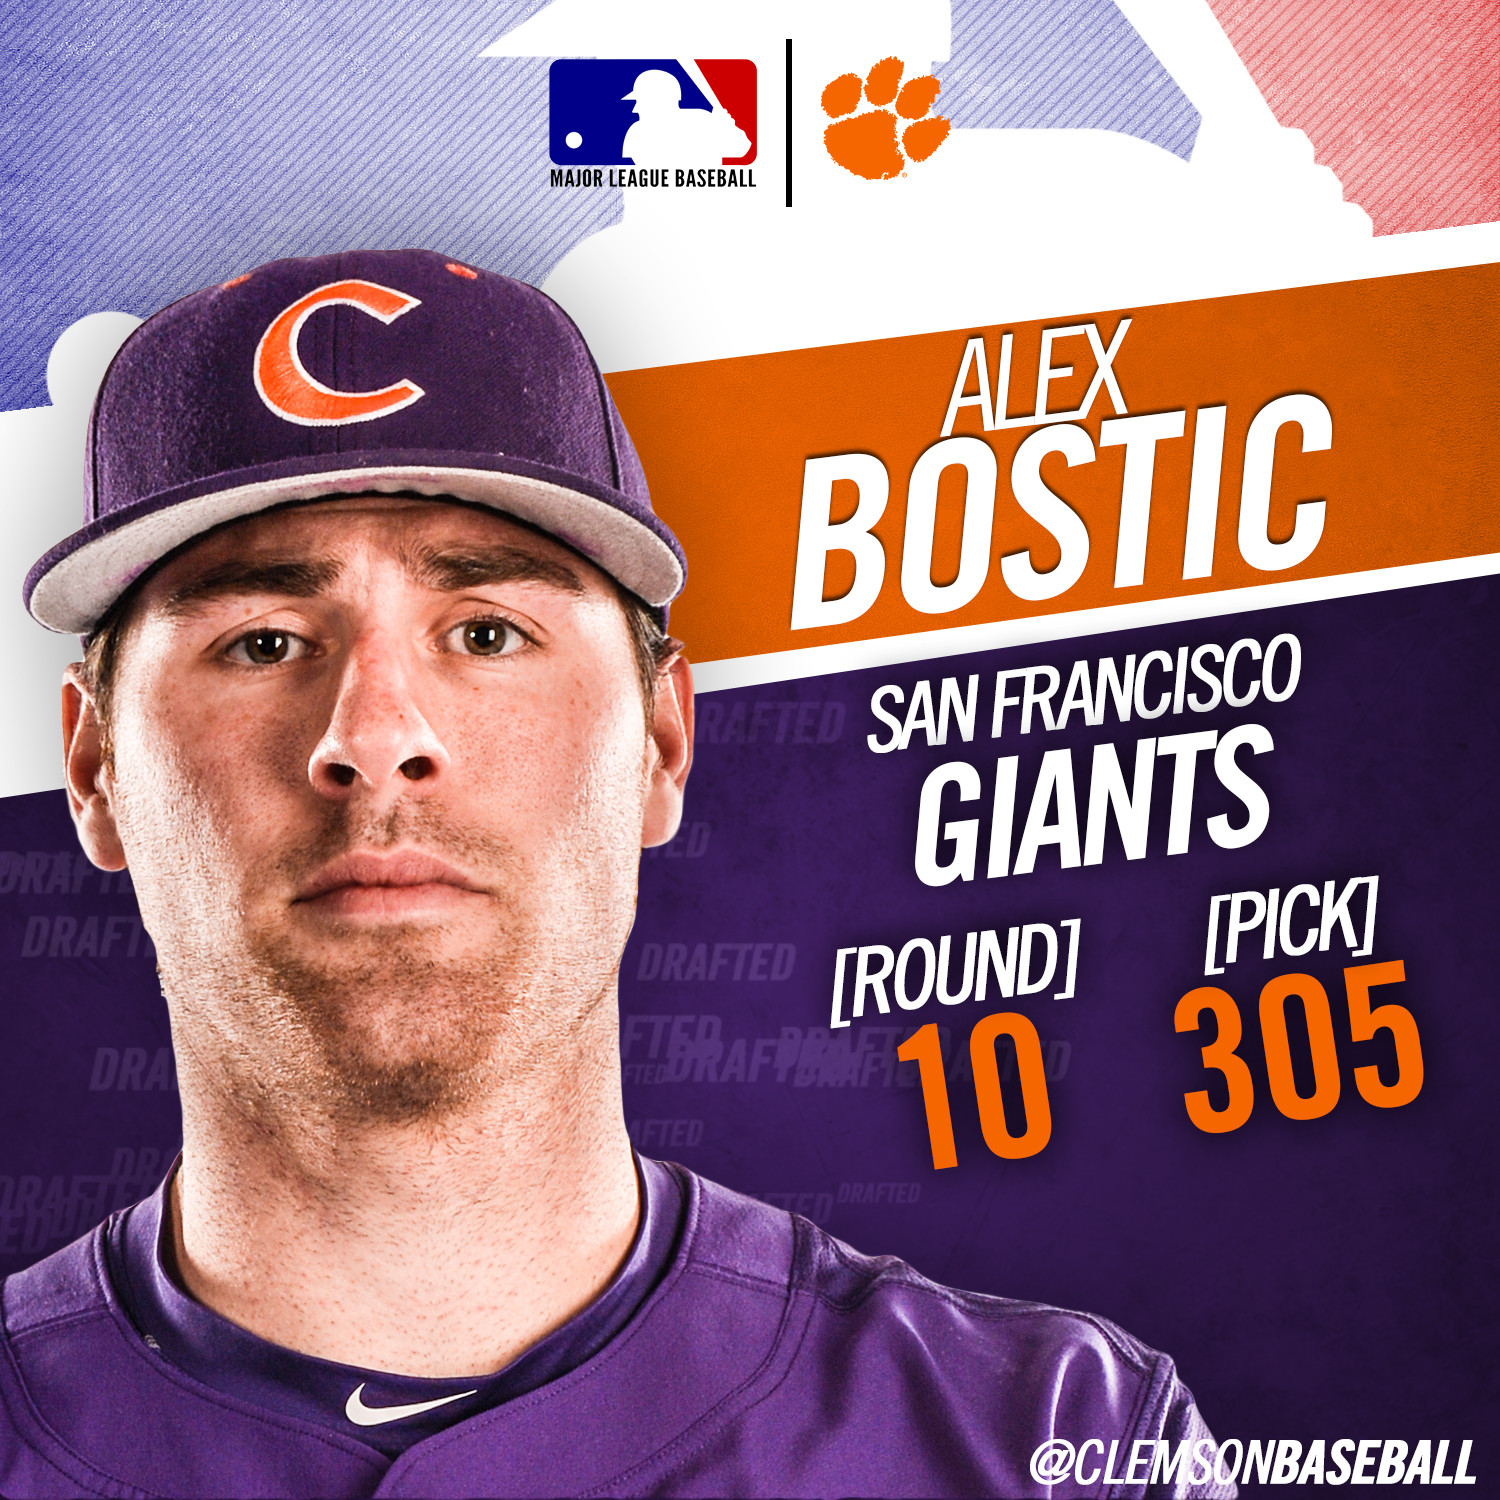 Bostic Drafted in 10th Round